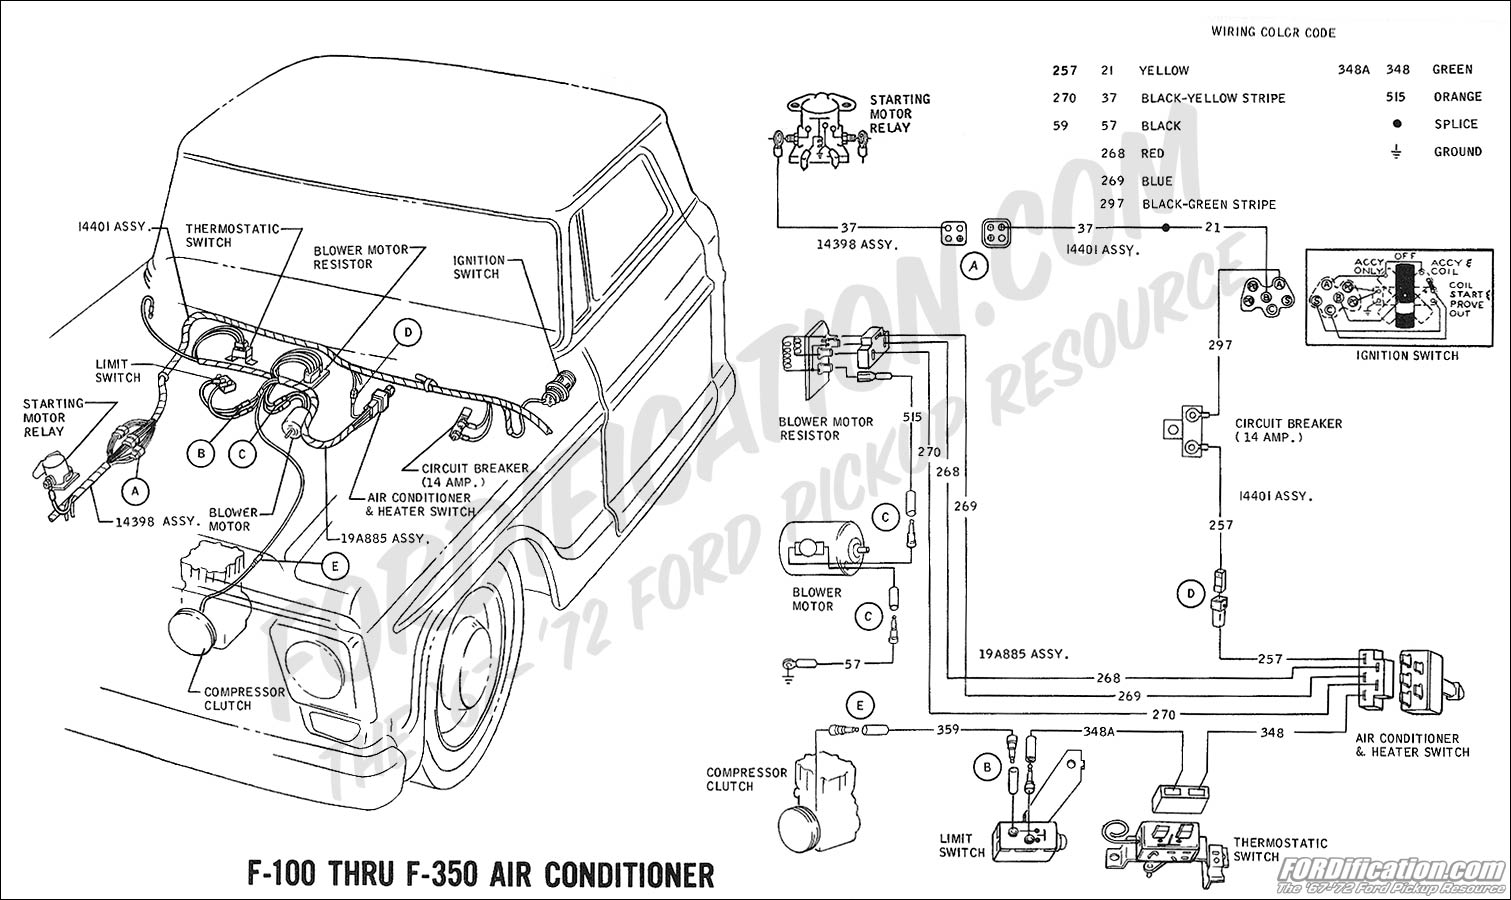 1ehyv Timing Gears One Dot Pointed One Down Small also Gear Vendor Wiring Schematic likewise 7j046 Chevrolet 1500 Just Purchased 1993 C1500 Silverado Ext likewise 3n9wx Voltage 8 9 Volts Tank Fuel Pump 89 S10 4 3 moreover Page 2. on 93 chevy truck wiring diagram